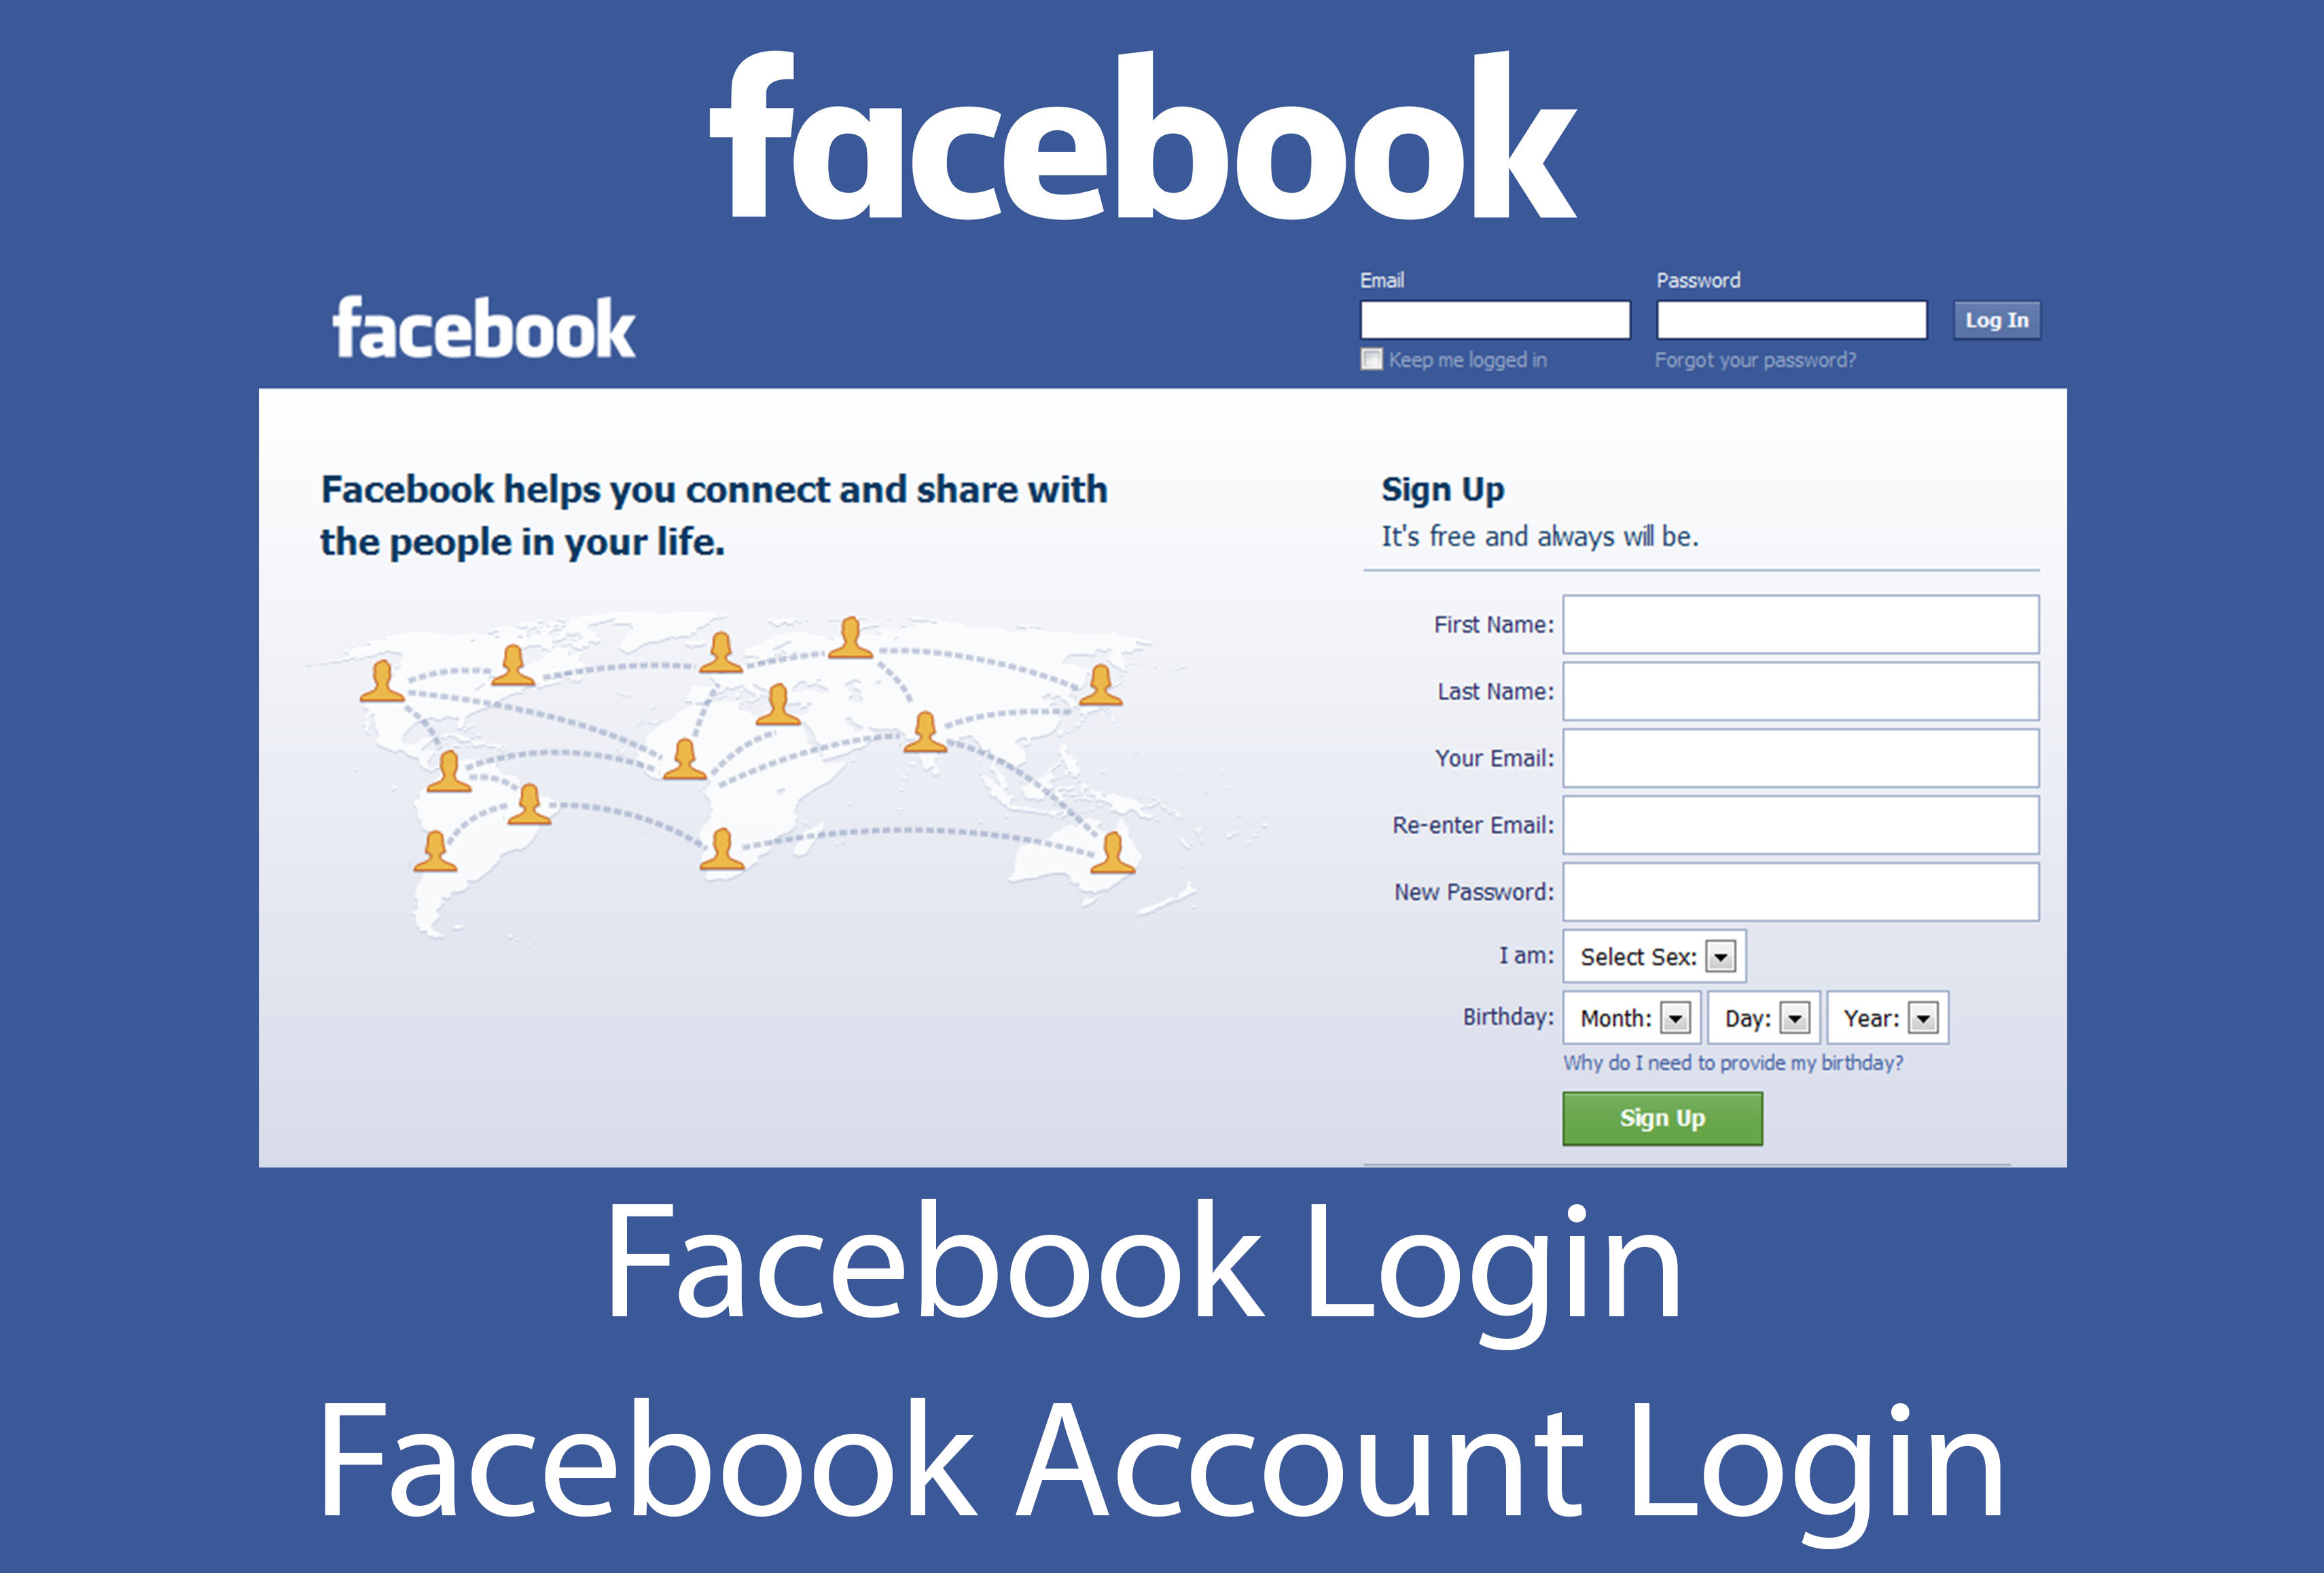 My facebook login sign up